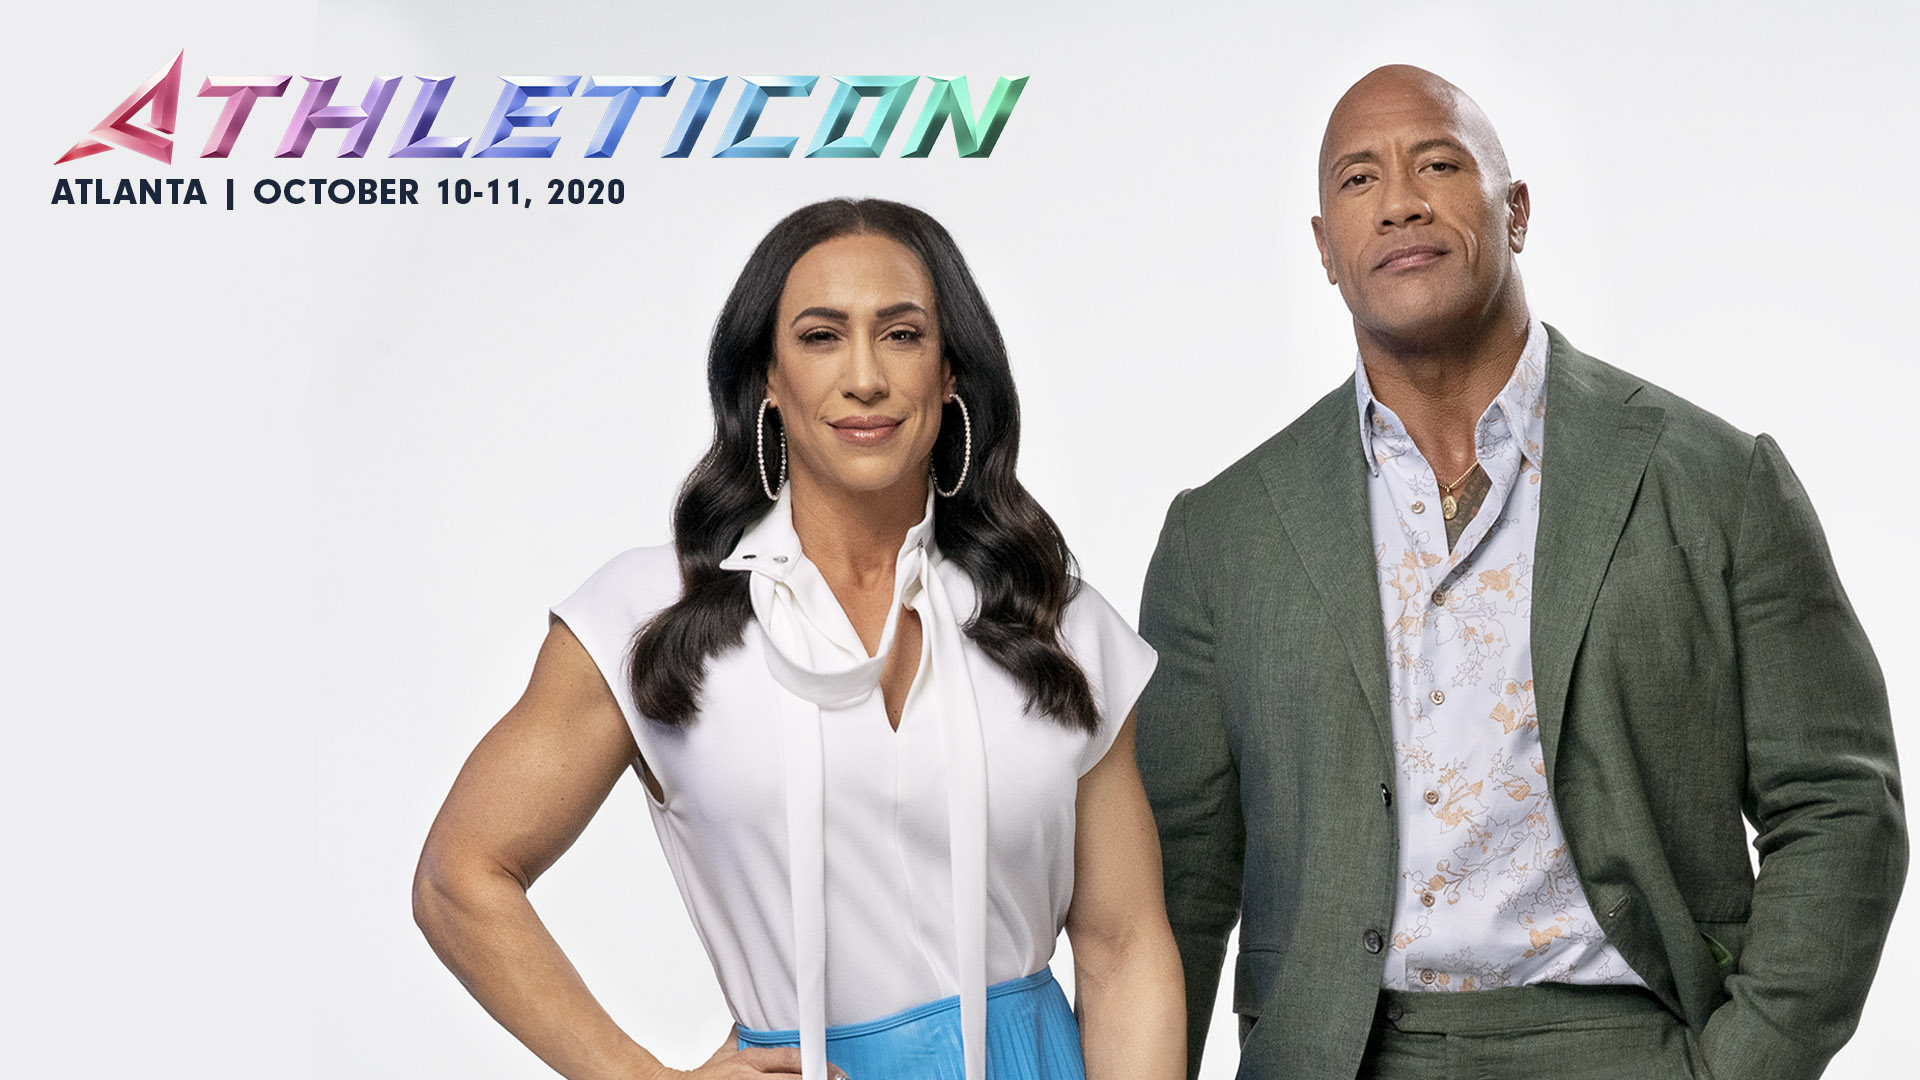 Dwayne 'The Rock' Johnson and Dany Garcia Are Launching Athleticon with Major Fitness Stars